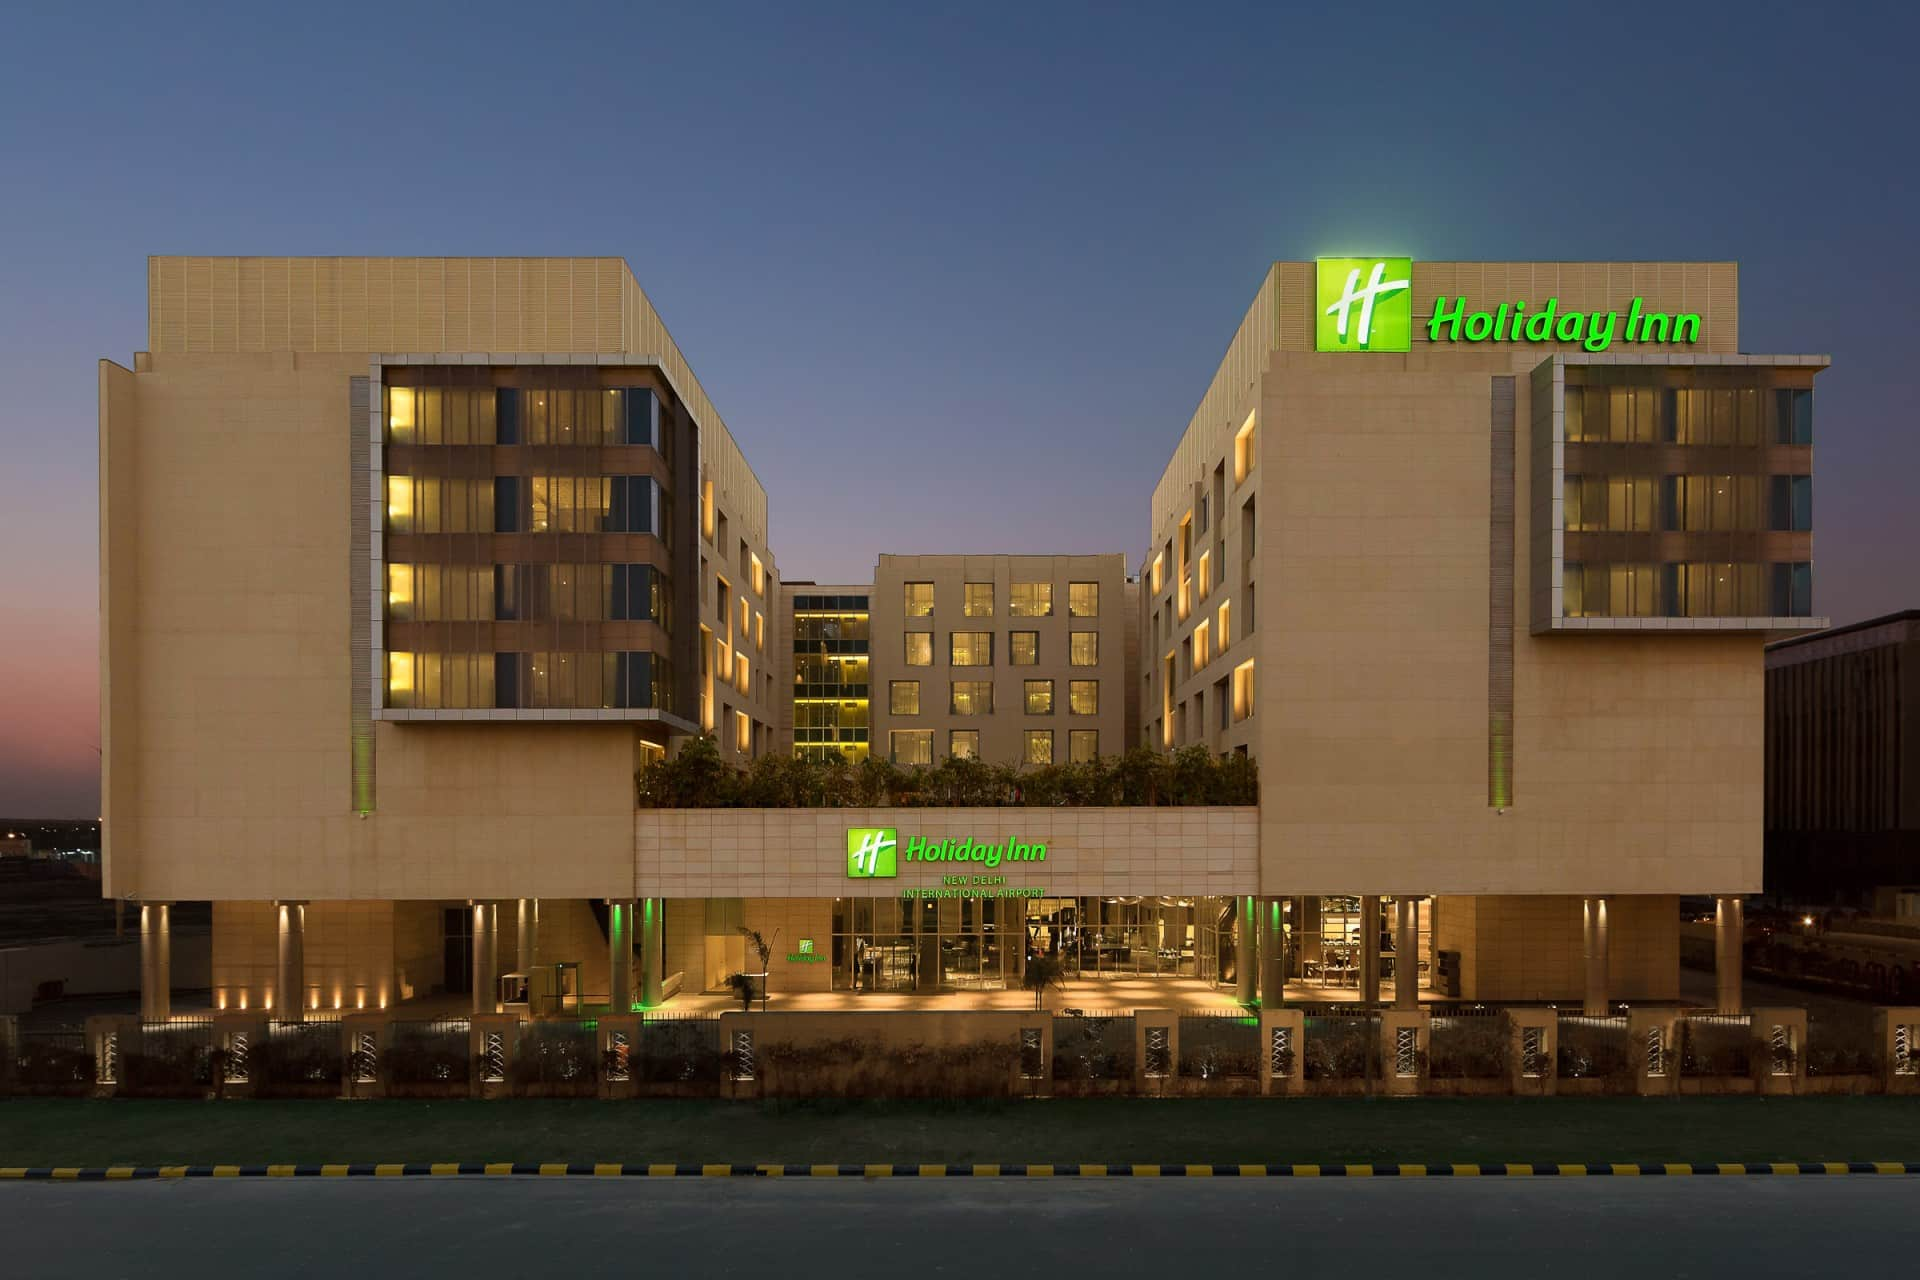 Best Architecture Photographer New Delhi | Holiday Inn Facade Photography India